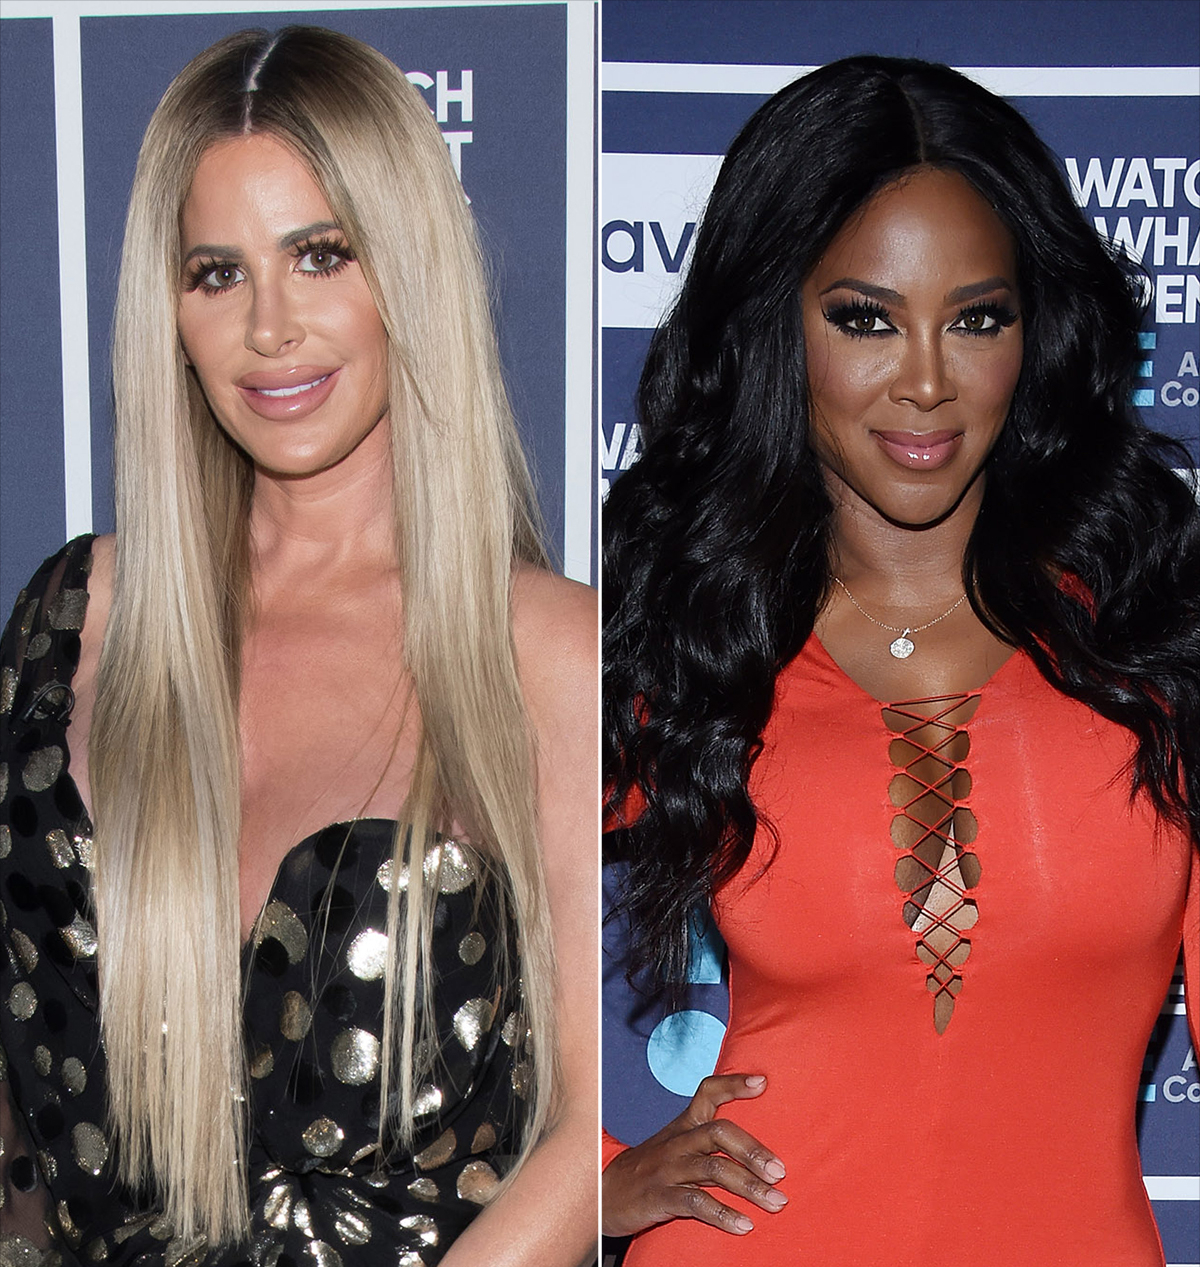 Kim Zolciak and Kenya Moore